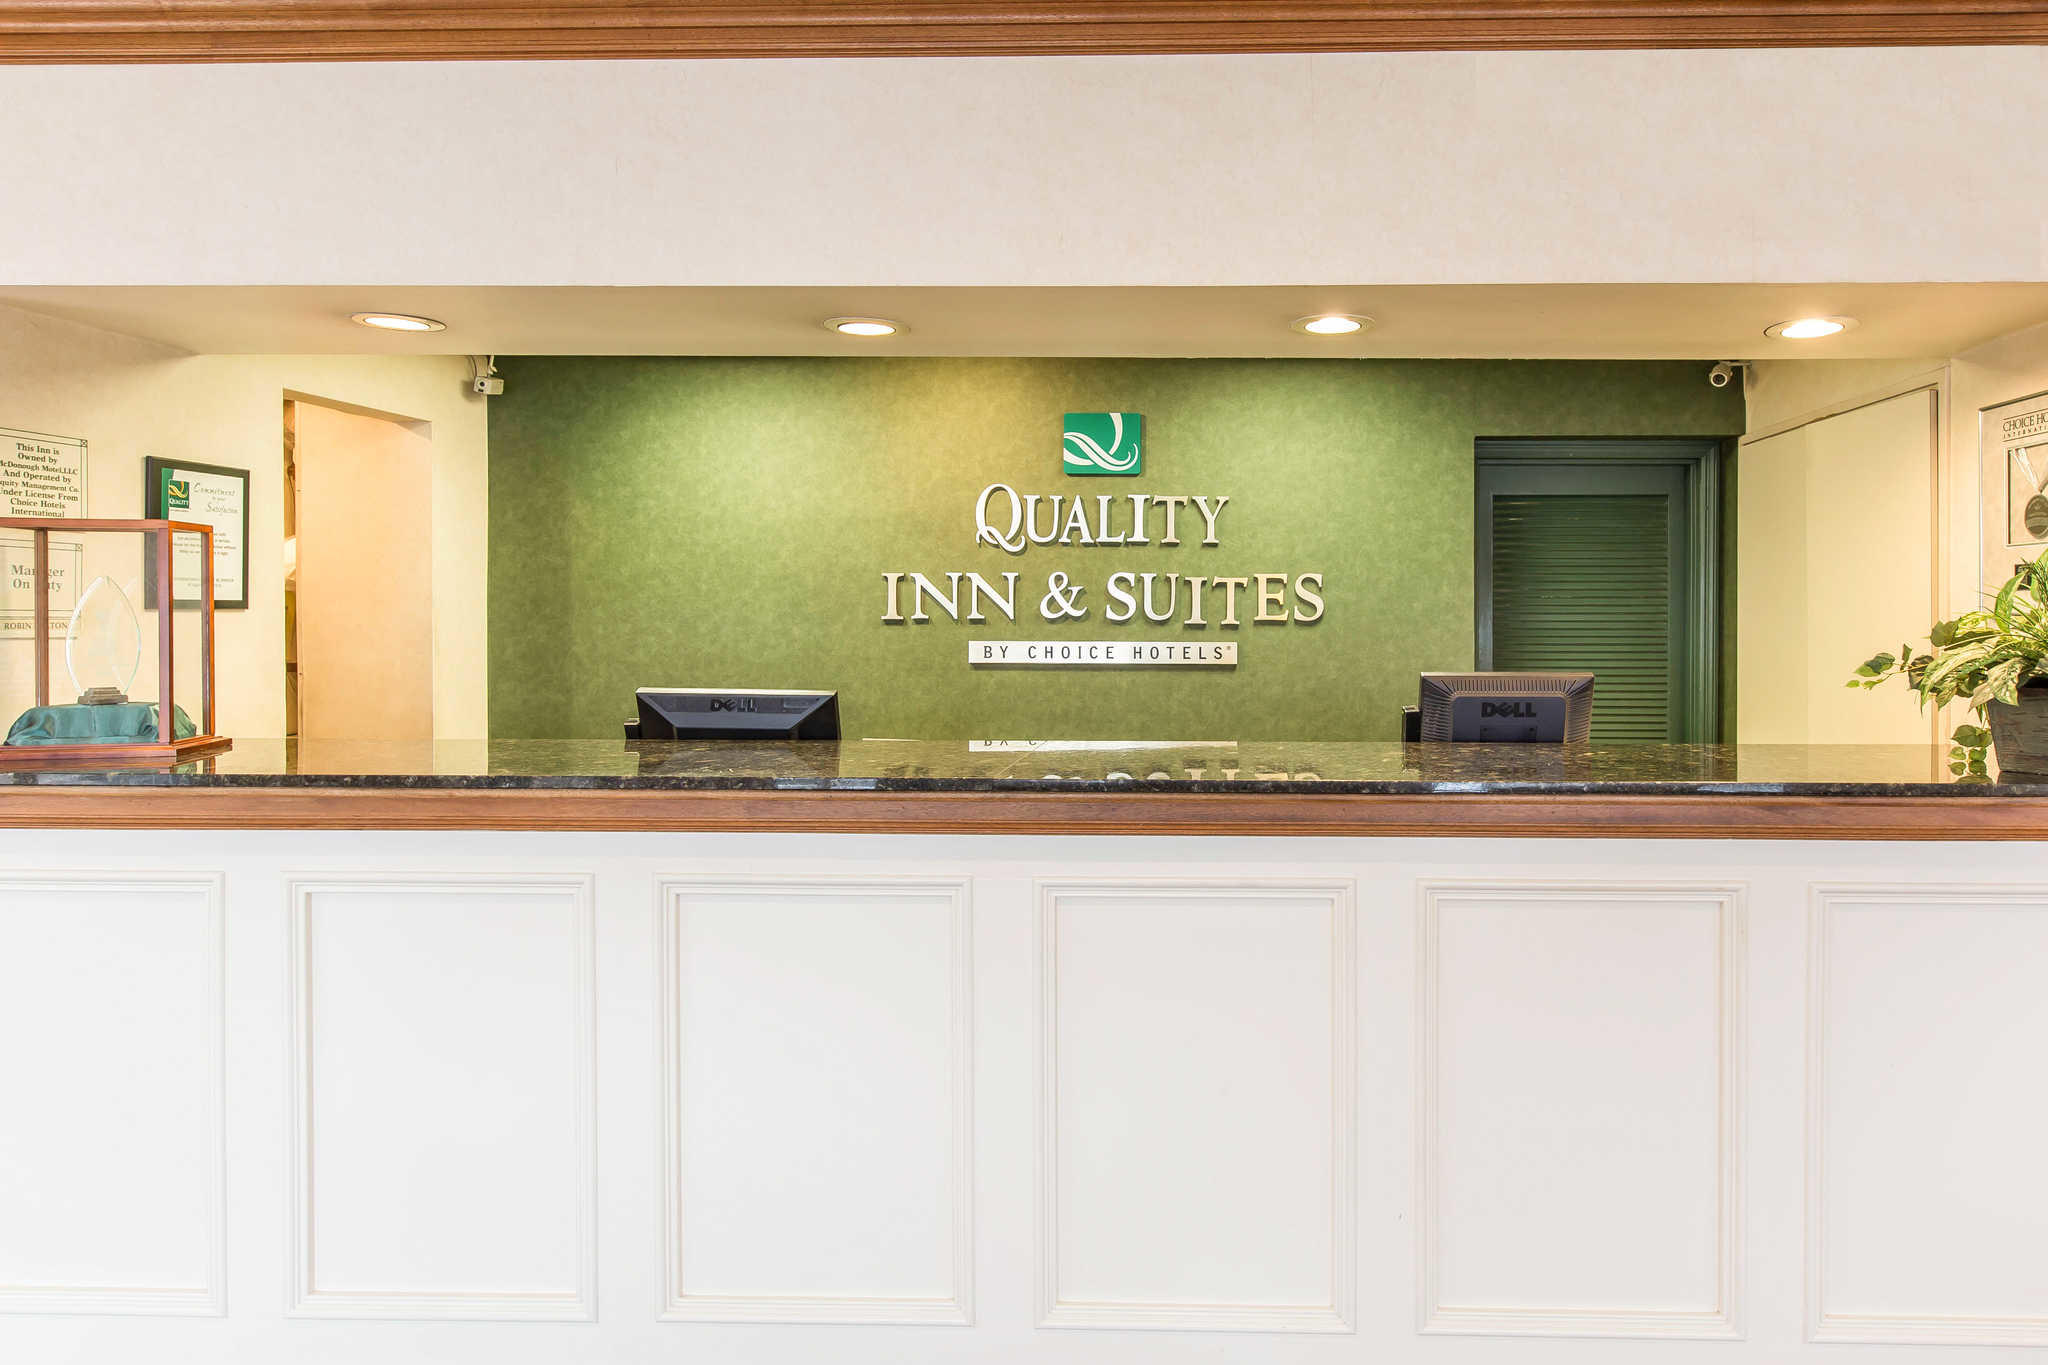 Quality Inn & Suites Conference Center image 2